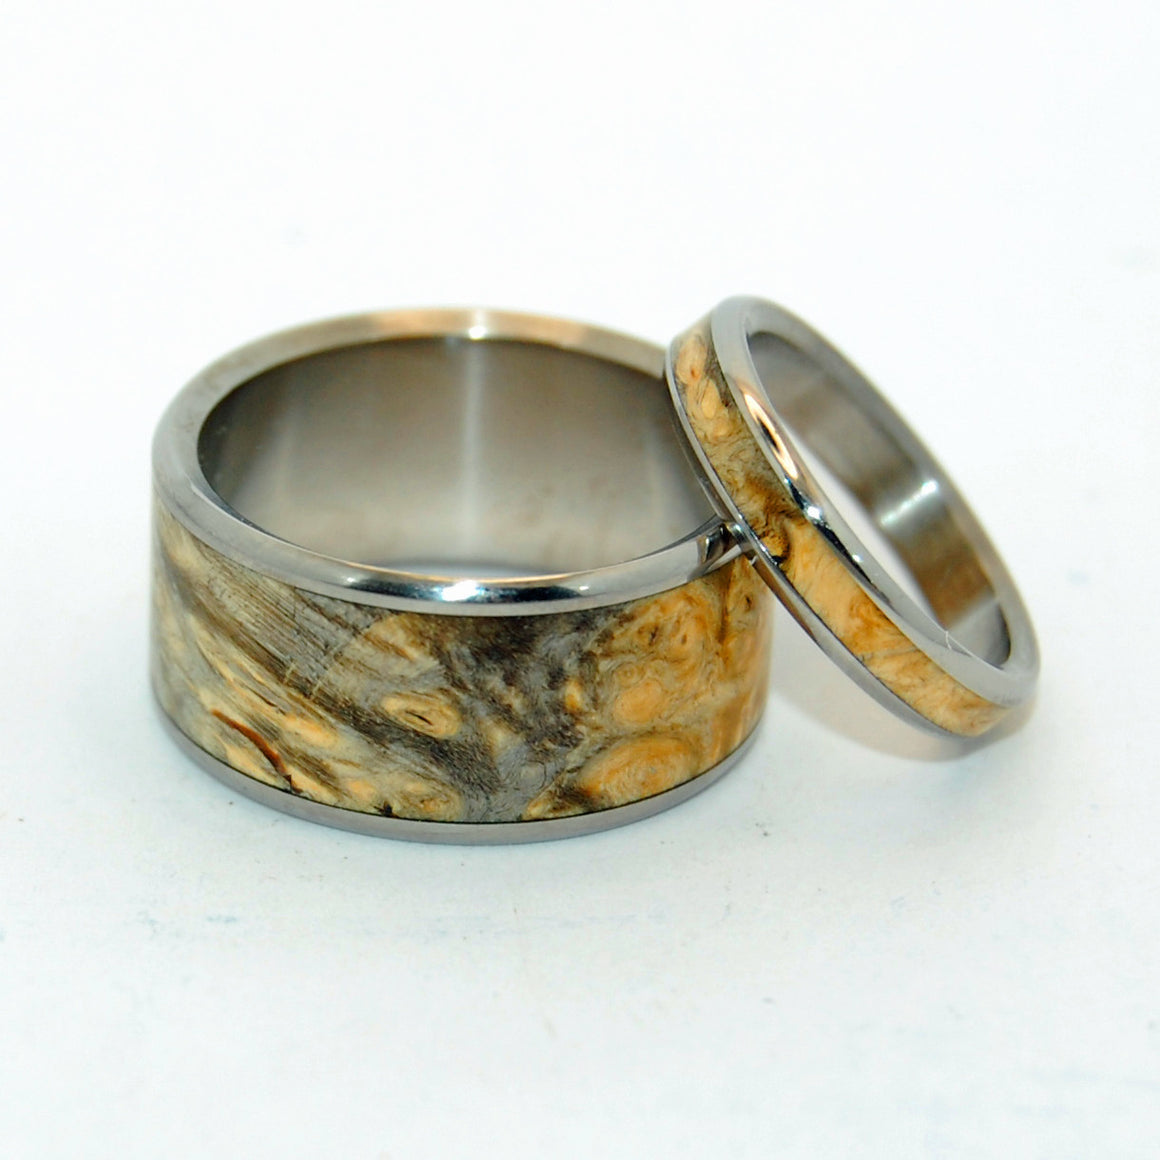 RUNAWAY SET | California Buckeye Wood & Titanium - Unique Wedding Rings - Wedding Rings - Minter and Richter Designs